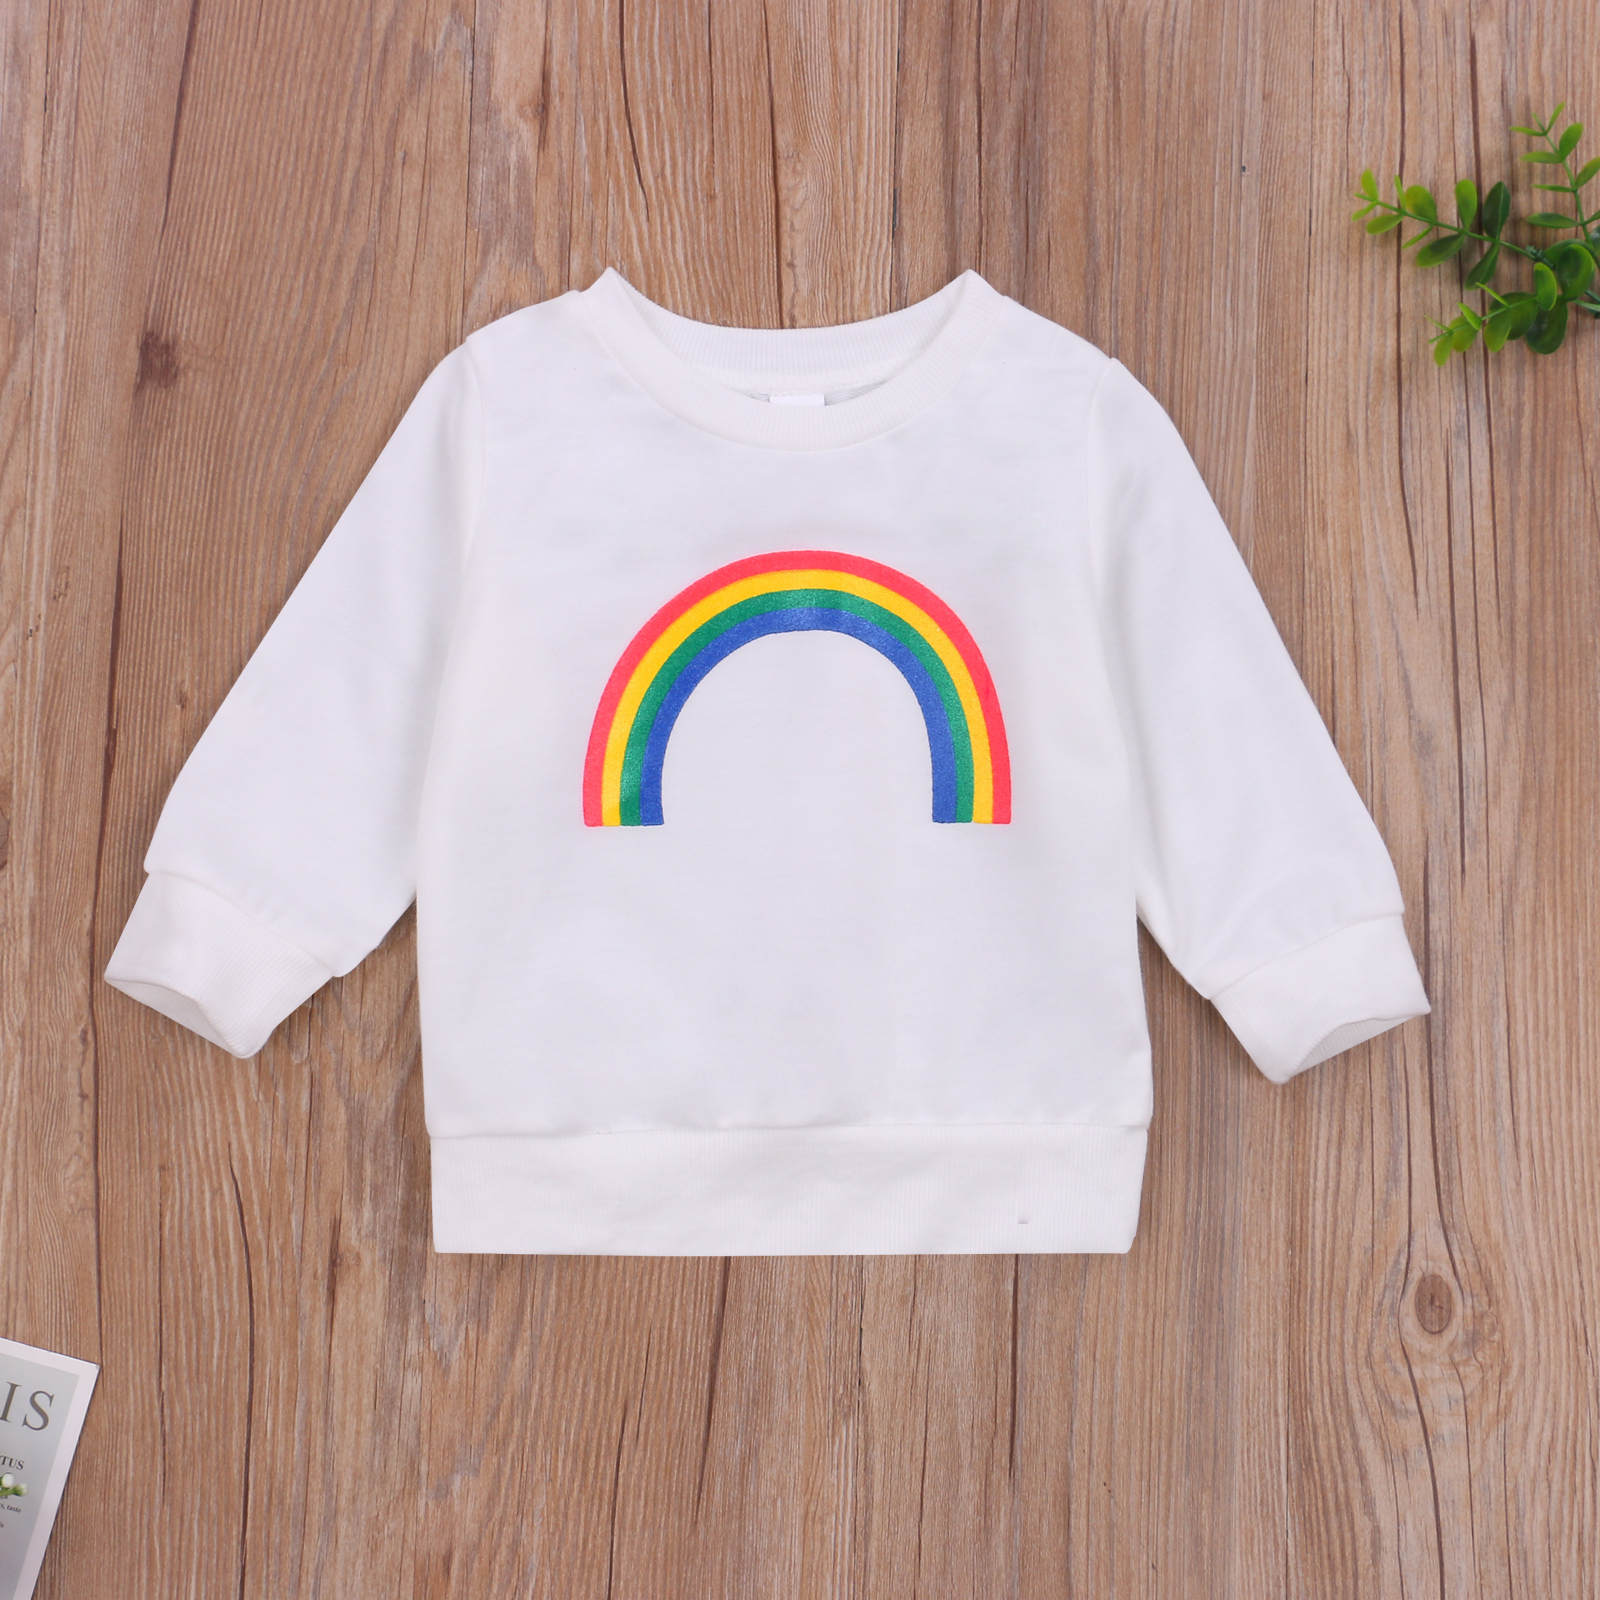 Pudcoco 2020 Autumn 0-3Y Toddler Baby Girl Boy Rainbow Pattern Print Long Sleeve Sweatshirt Infant Outfit Clothes White/Black 2